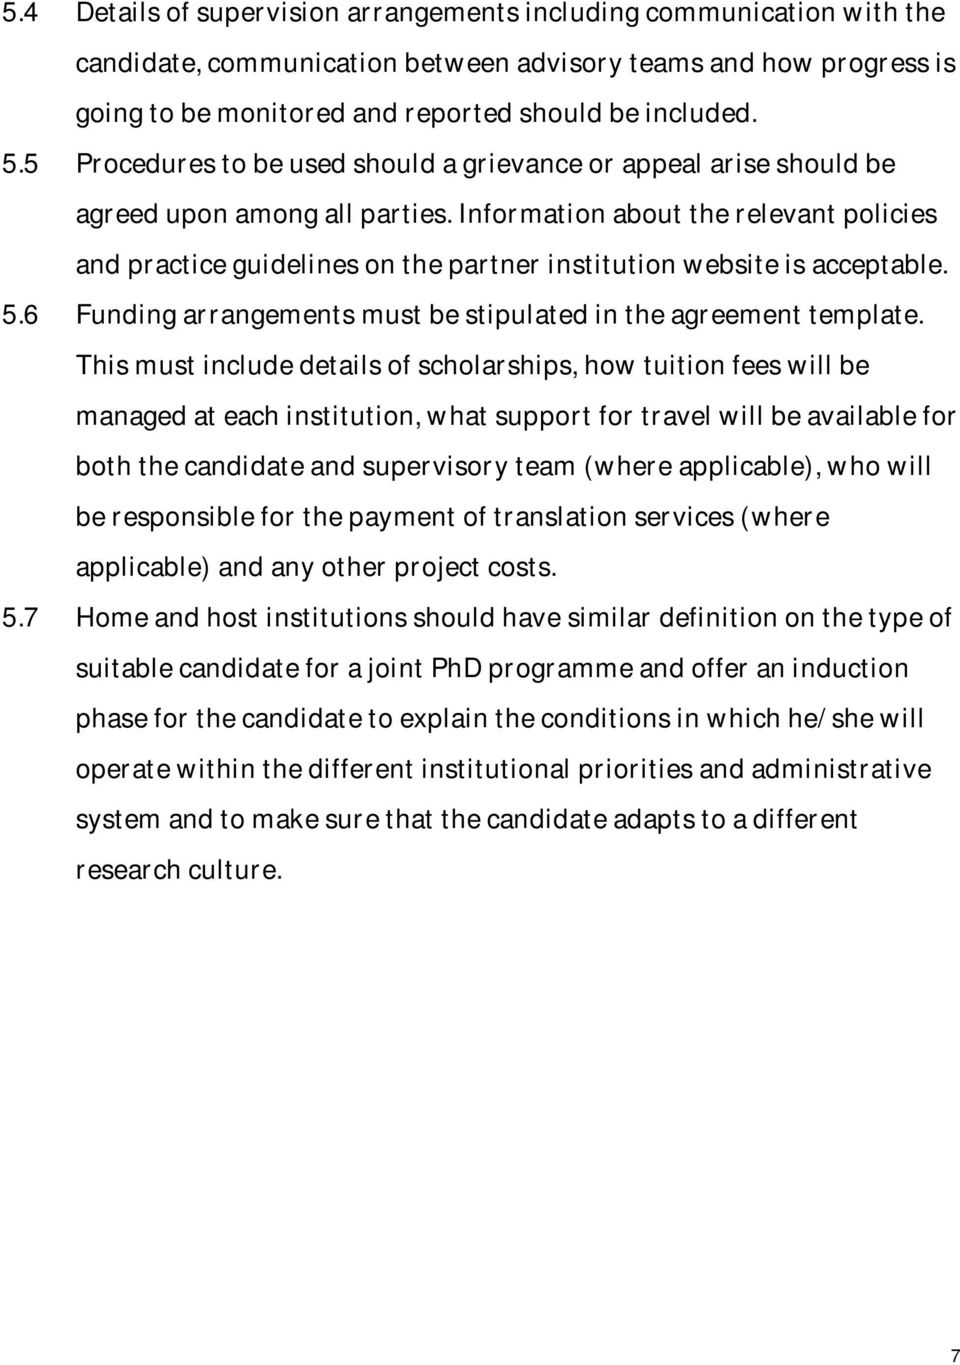 Information about the relevant policies and practice guidelines on the partner institution website is acceptable. 5.6 Funding arrangements must be stipulated in the agreement template.